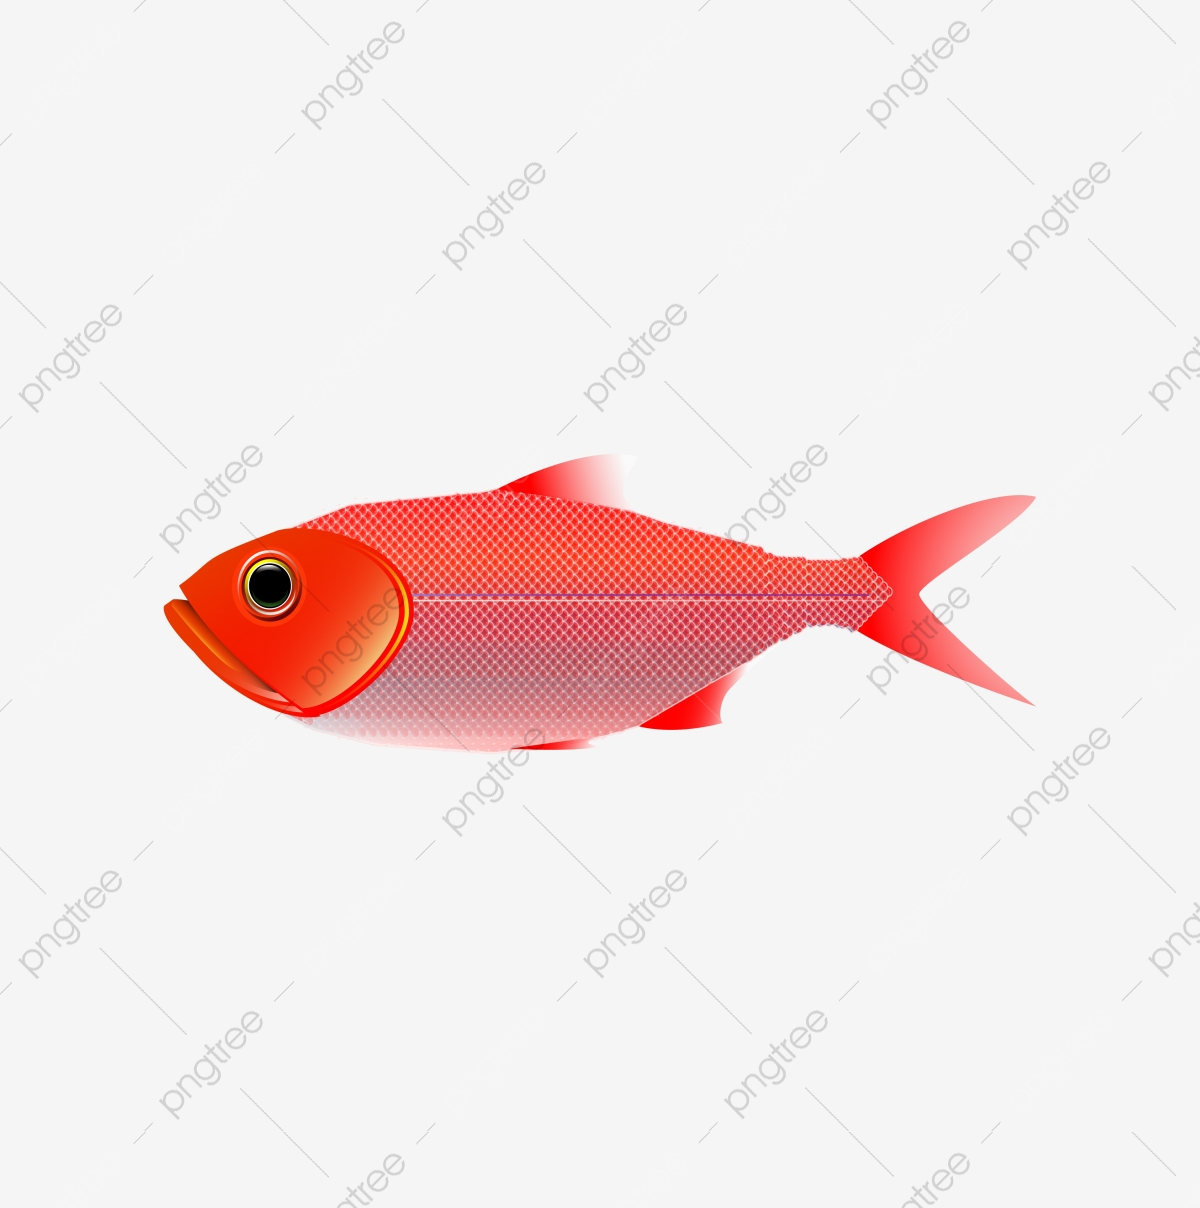 Fish Fish School Cartoon Fish Cartoon Deep Sea Underwater World Animal World Png And Vector With Transparent Background For Free Download